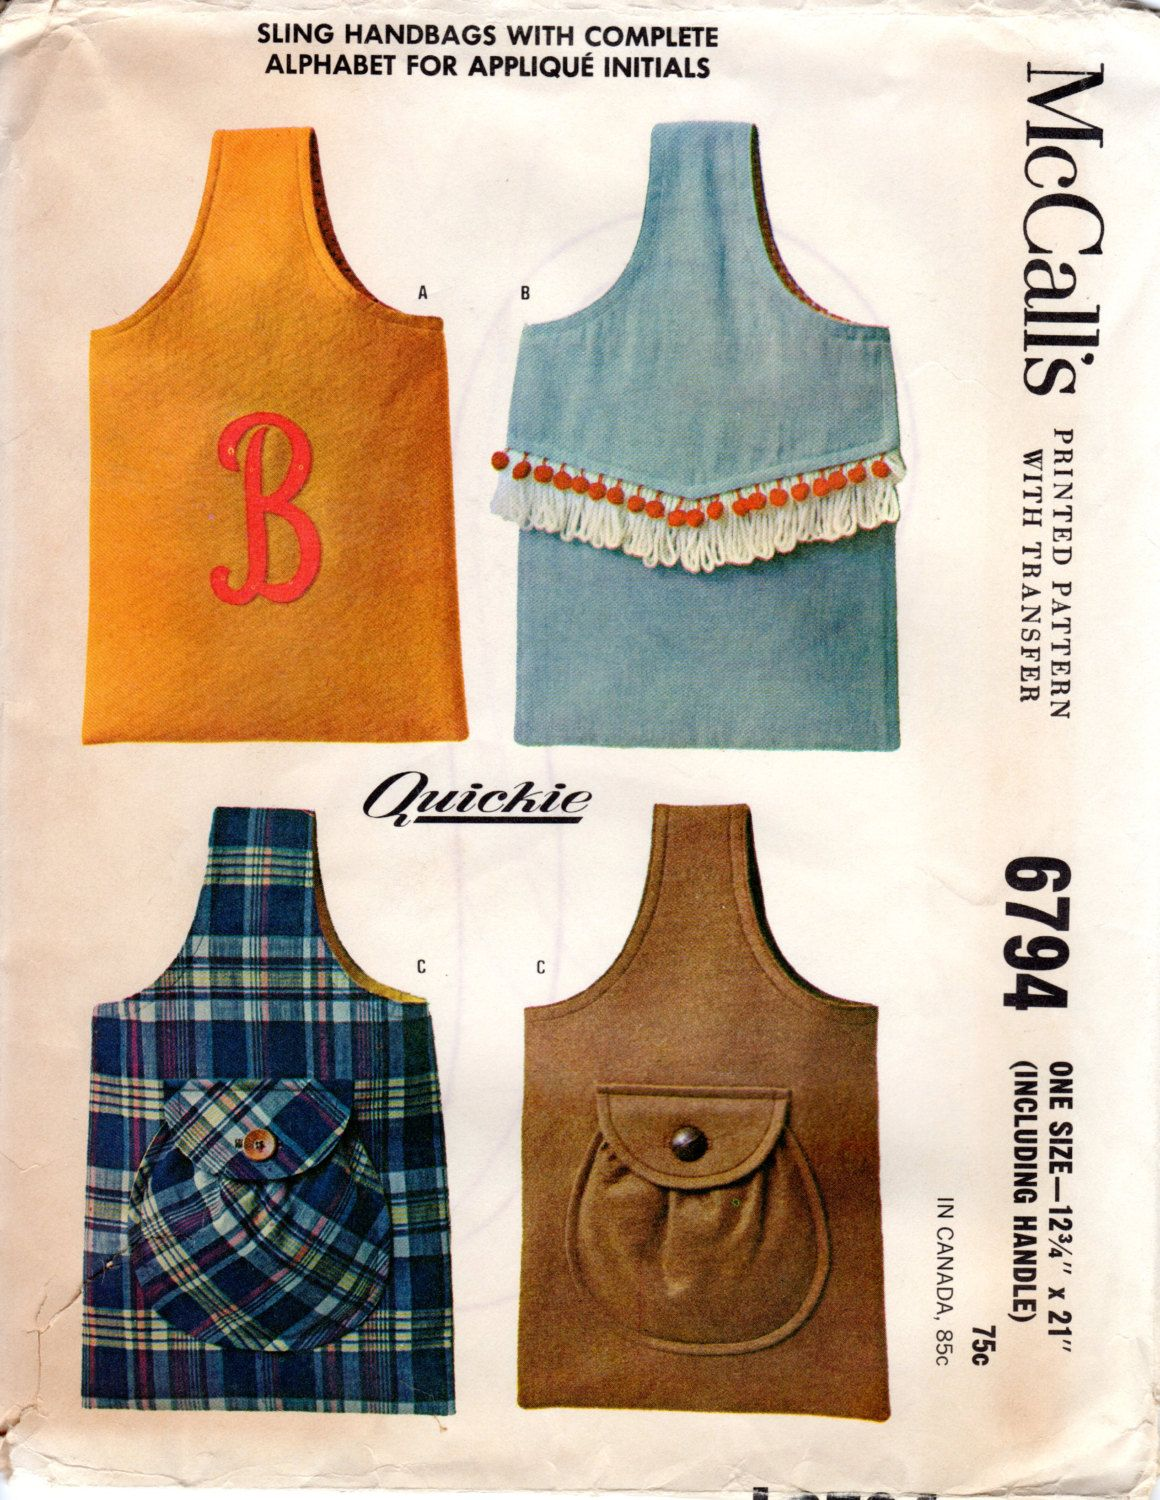 1960s Sling Handbags with Pocket & Monogram - Vintage Pattern ...